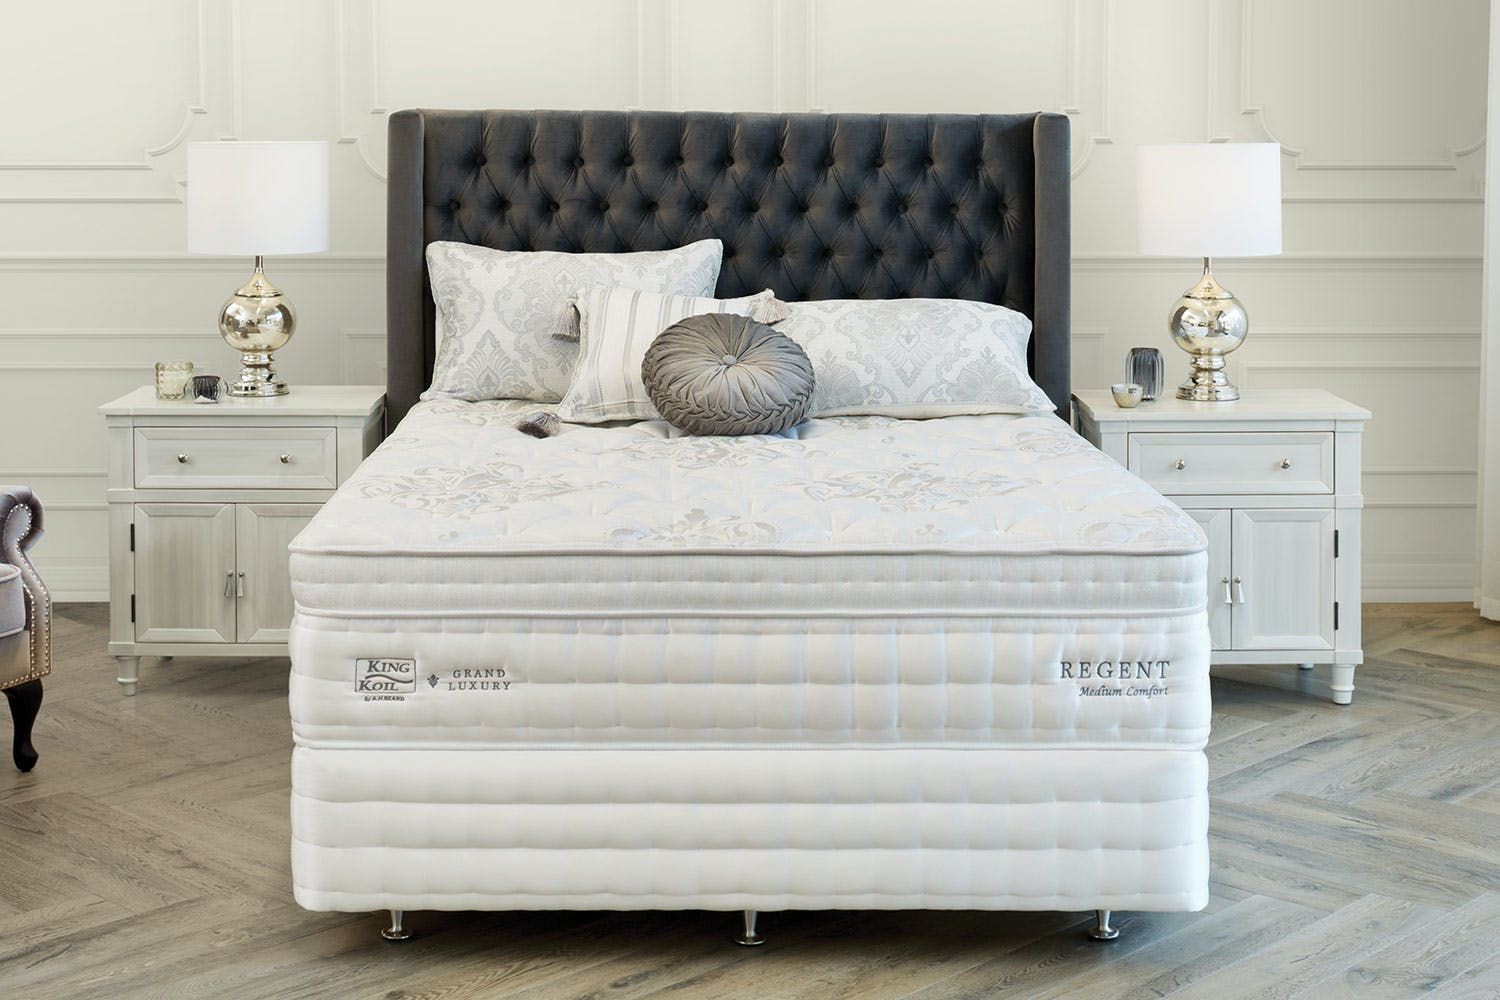 Image of Grand Luxury Regent Medium Super King Bed by King Koil